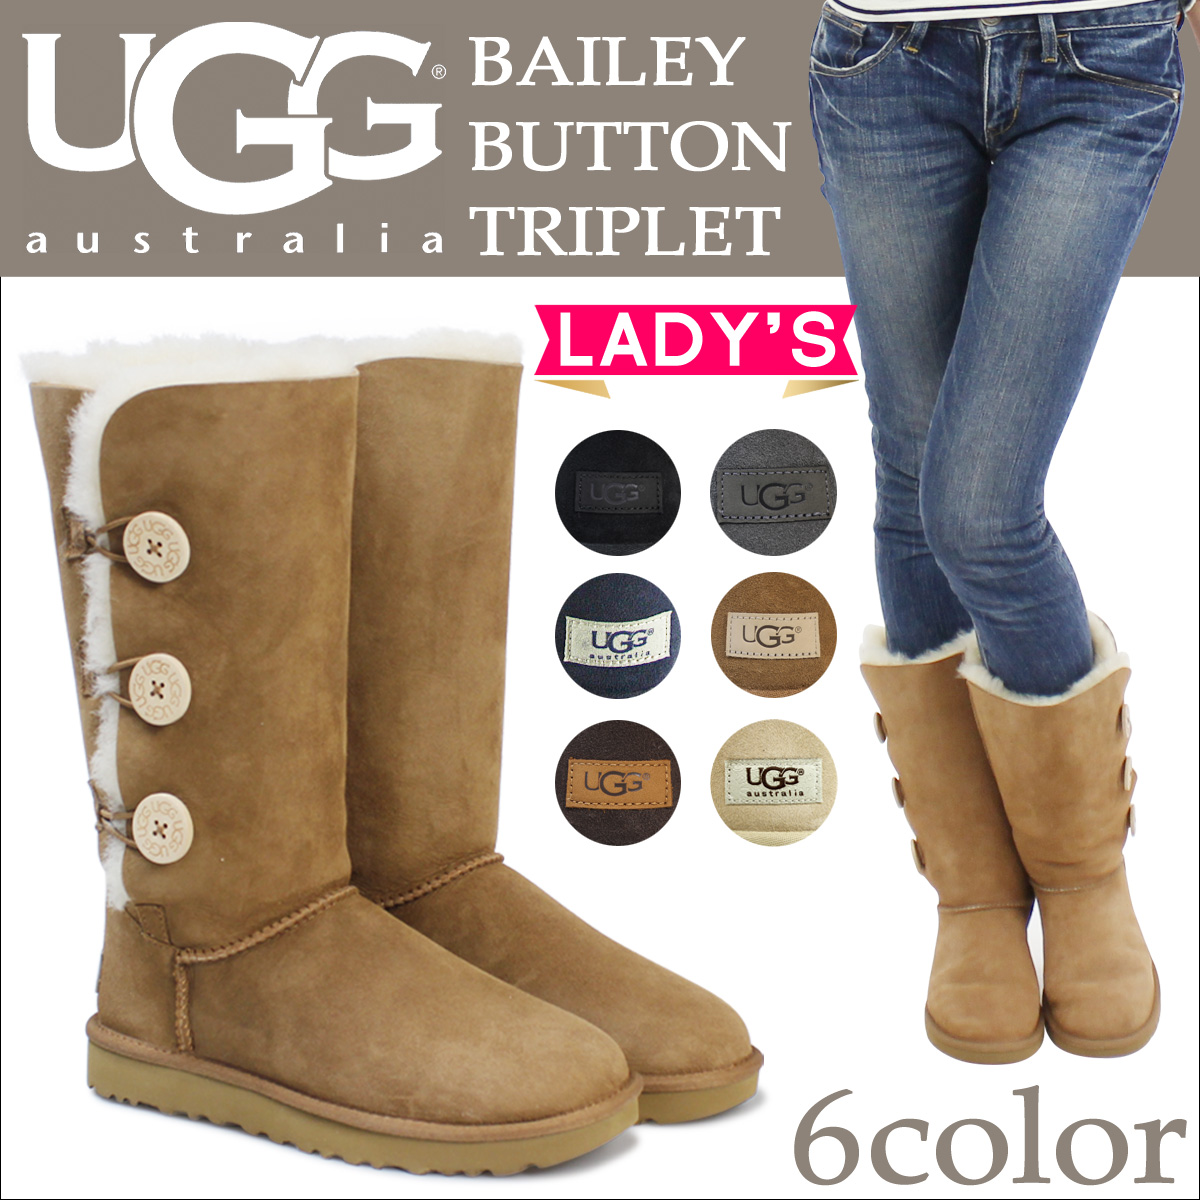 ugg bailey button triplet